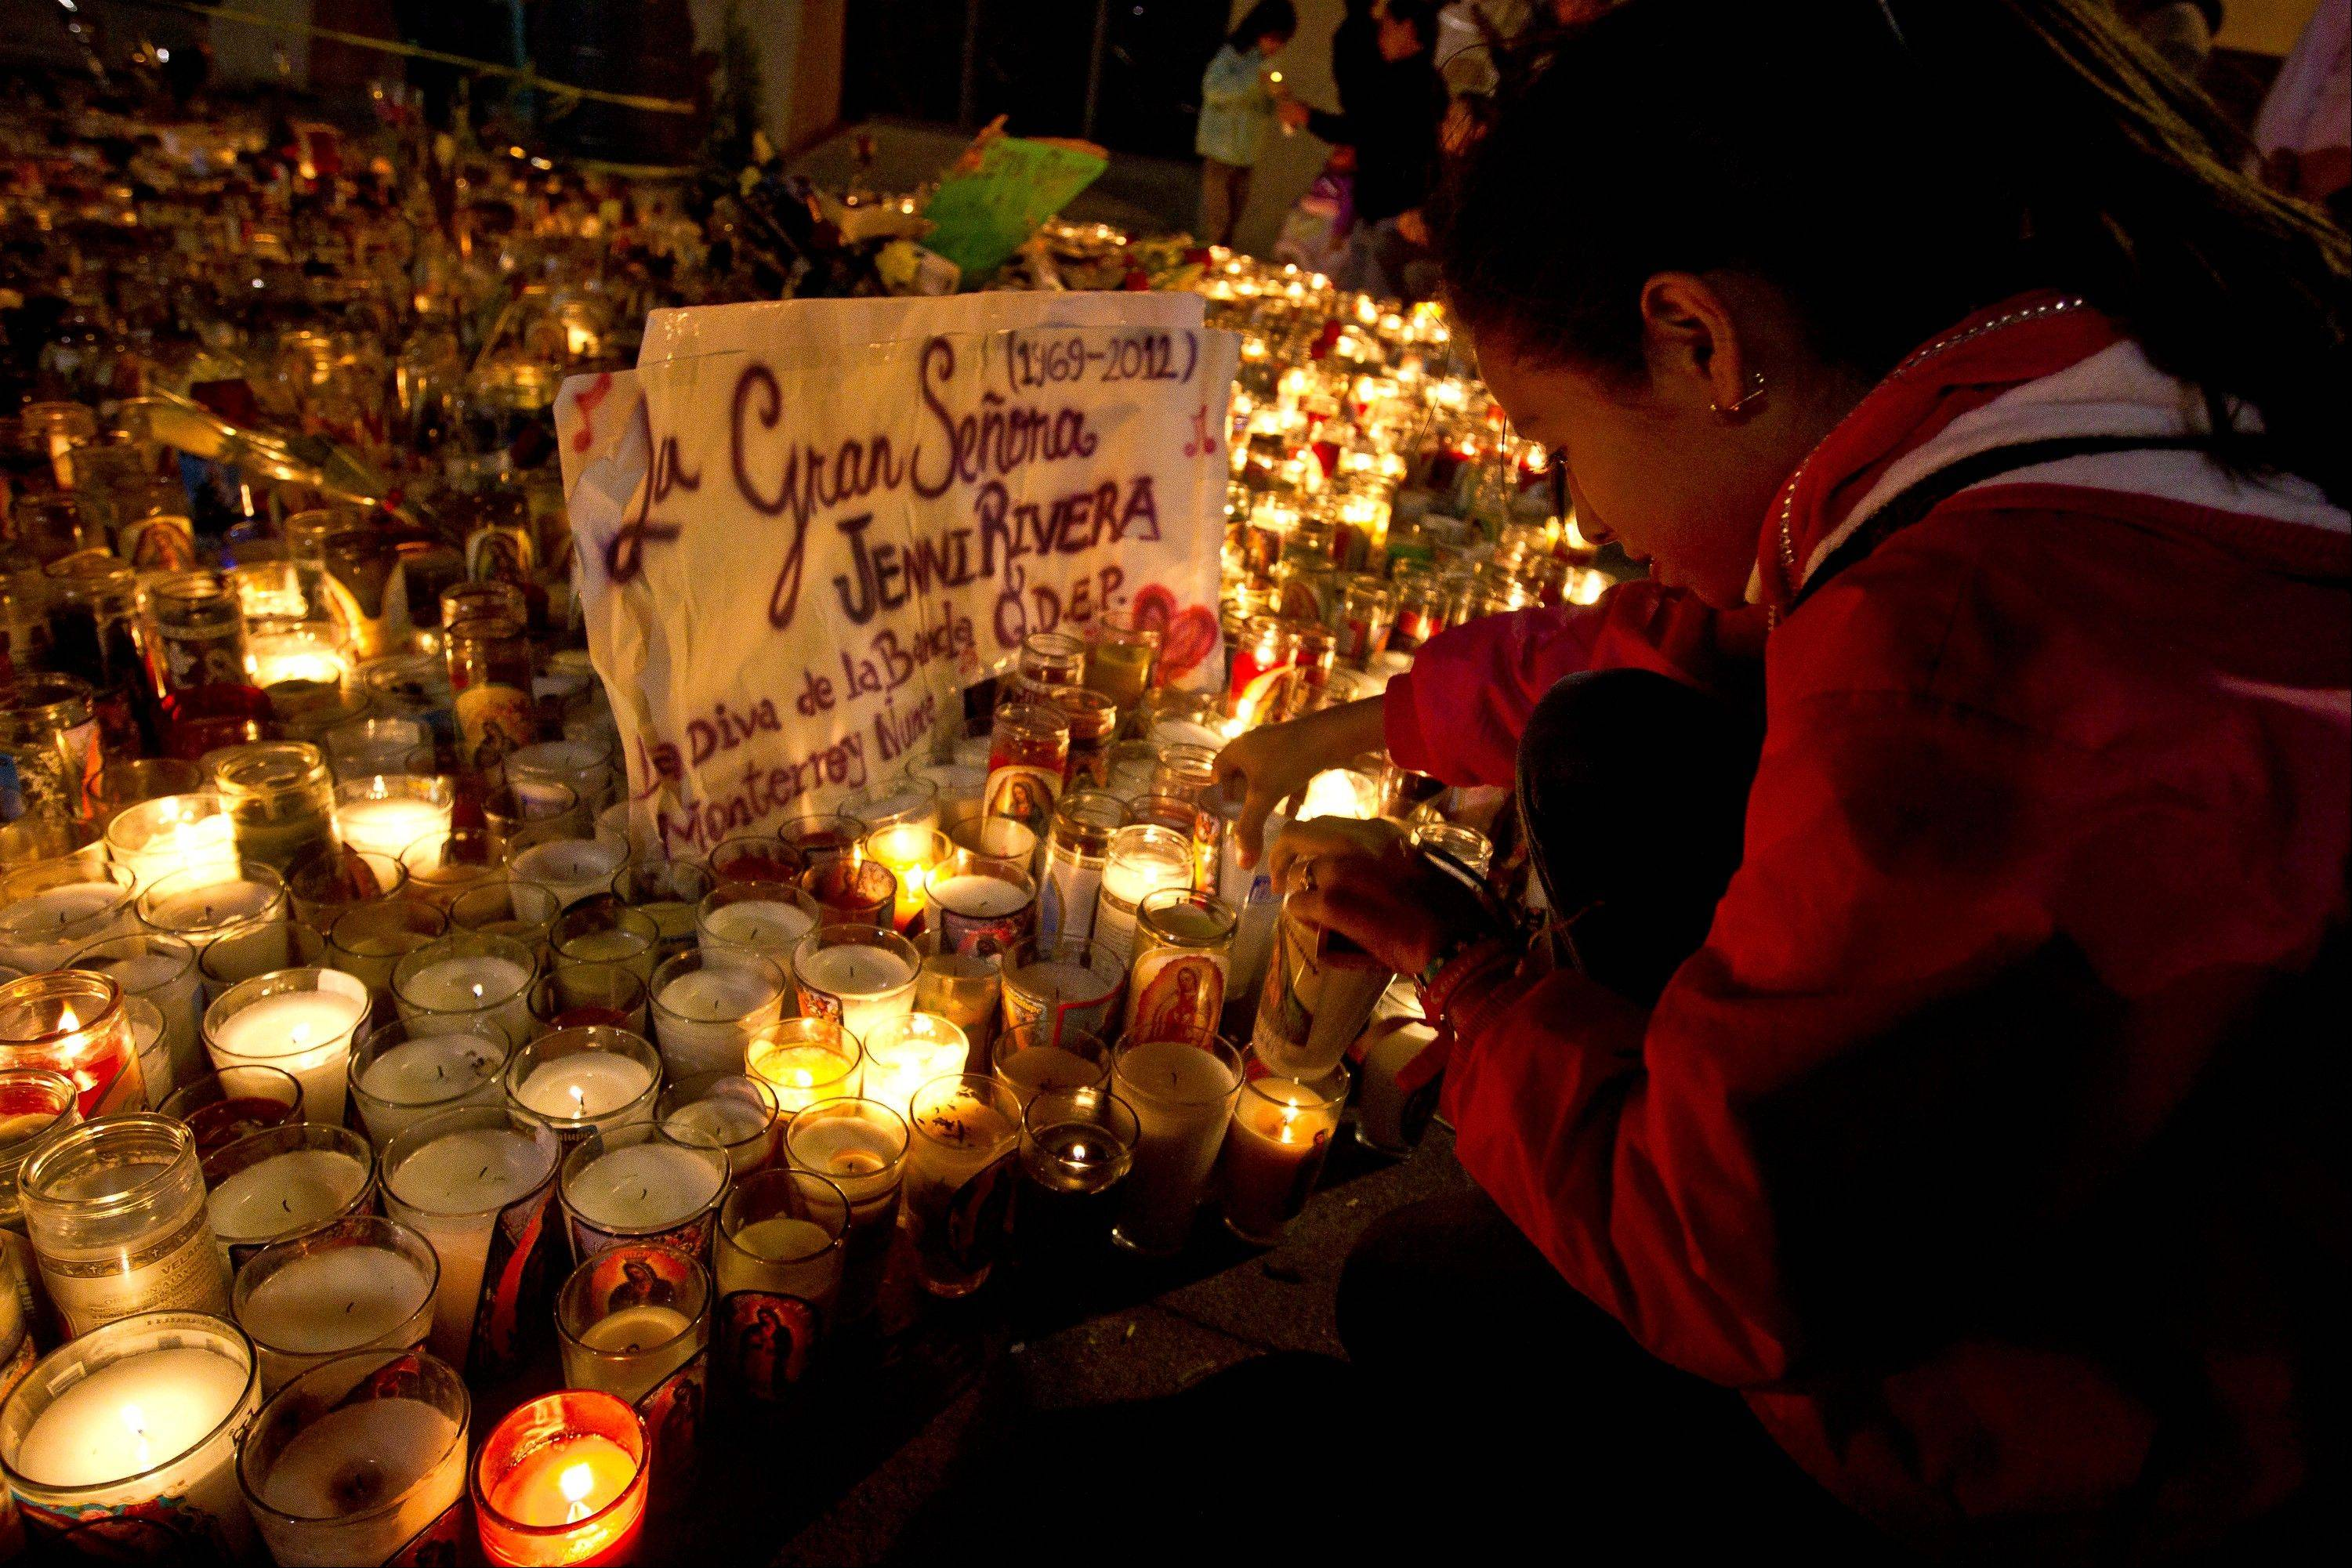 A fan of Jenny Rivera lights a candle at the Basilica of Guadalupe in the city of Monterrey, Mexico, Monday Dec. 10, 2012. U.S. authorities confirmed Monday that Rivera, a U.S.-born singer whose soulful voice and openness about her personal troubles made her a Mexican-American superstar, was killed in a plane crash early Sunday in northern Mexico.